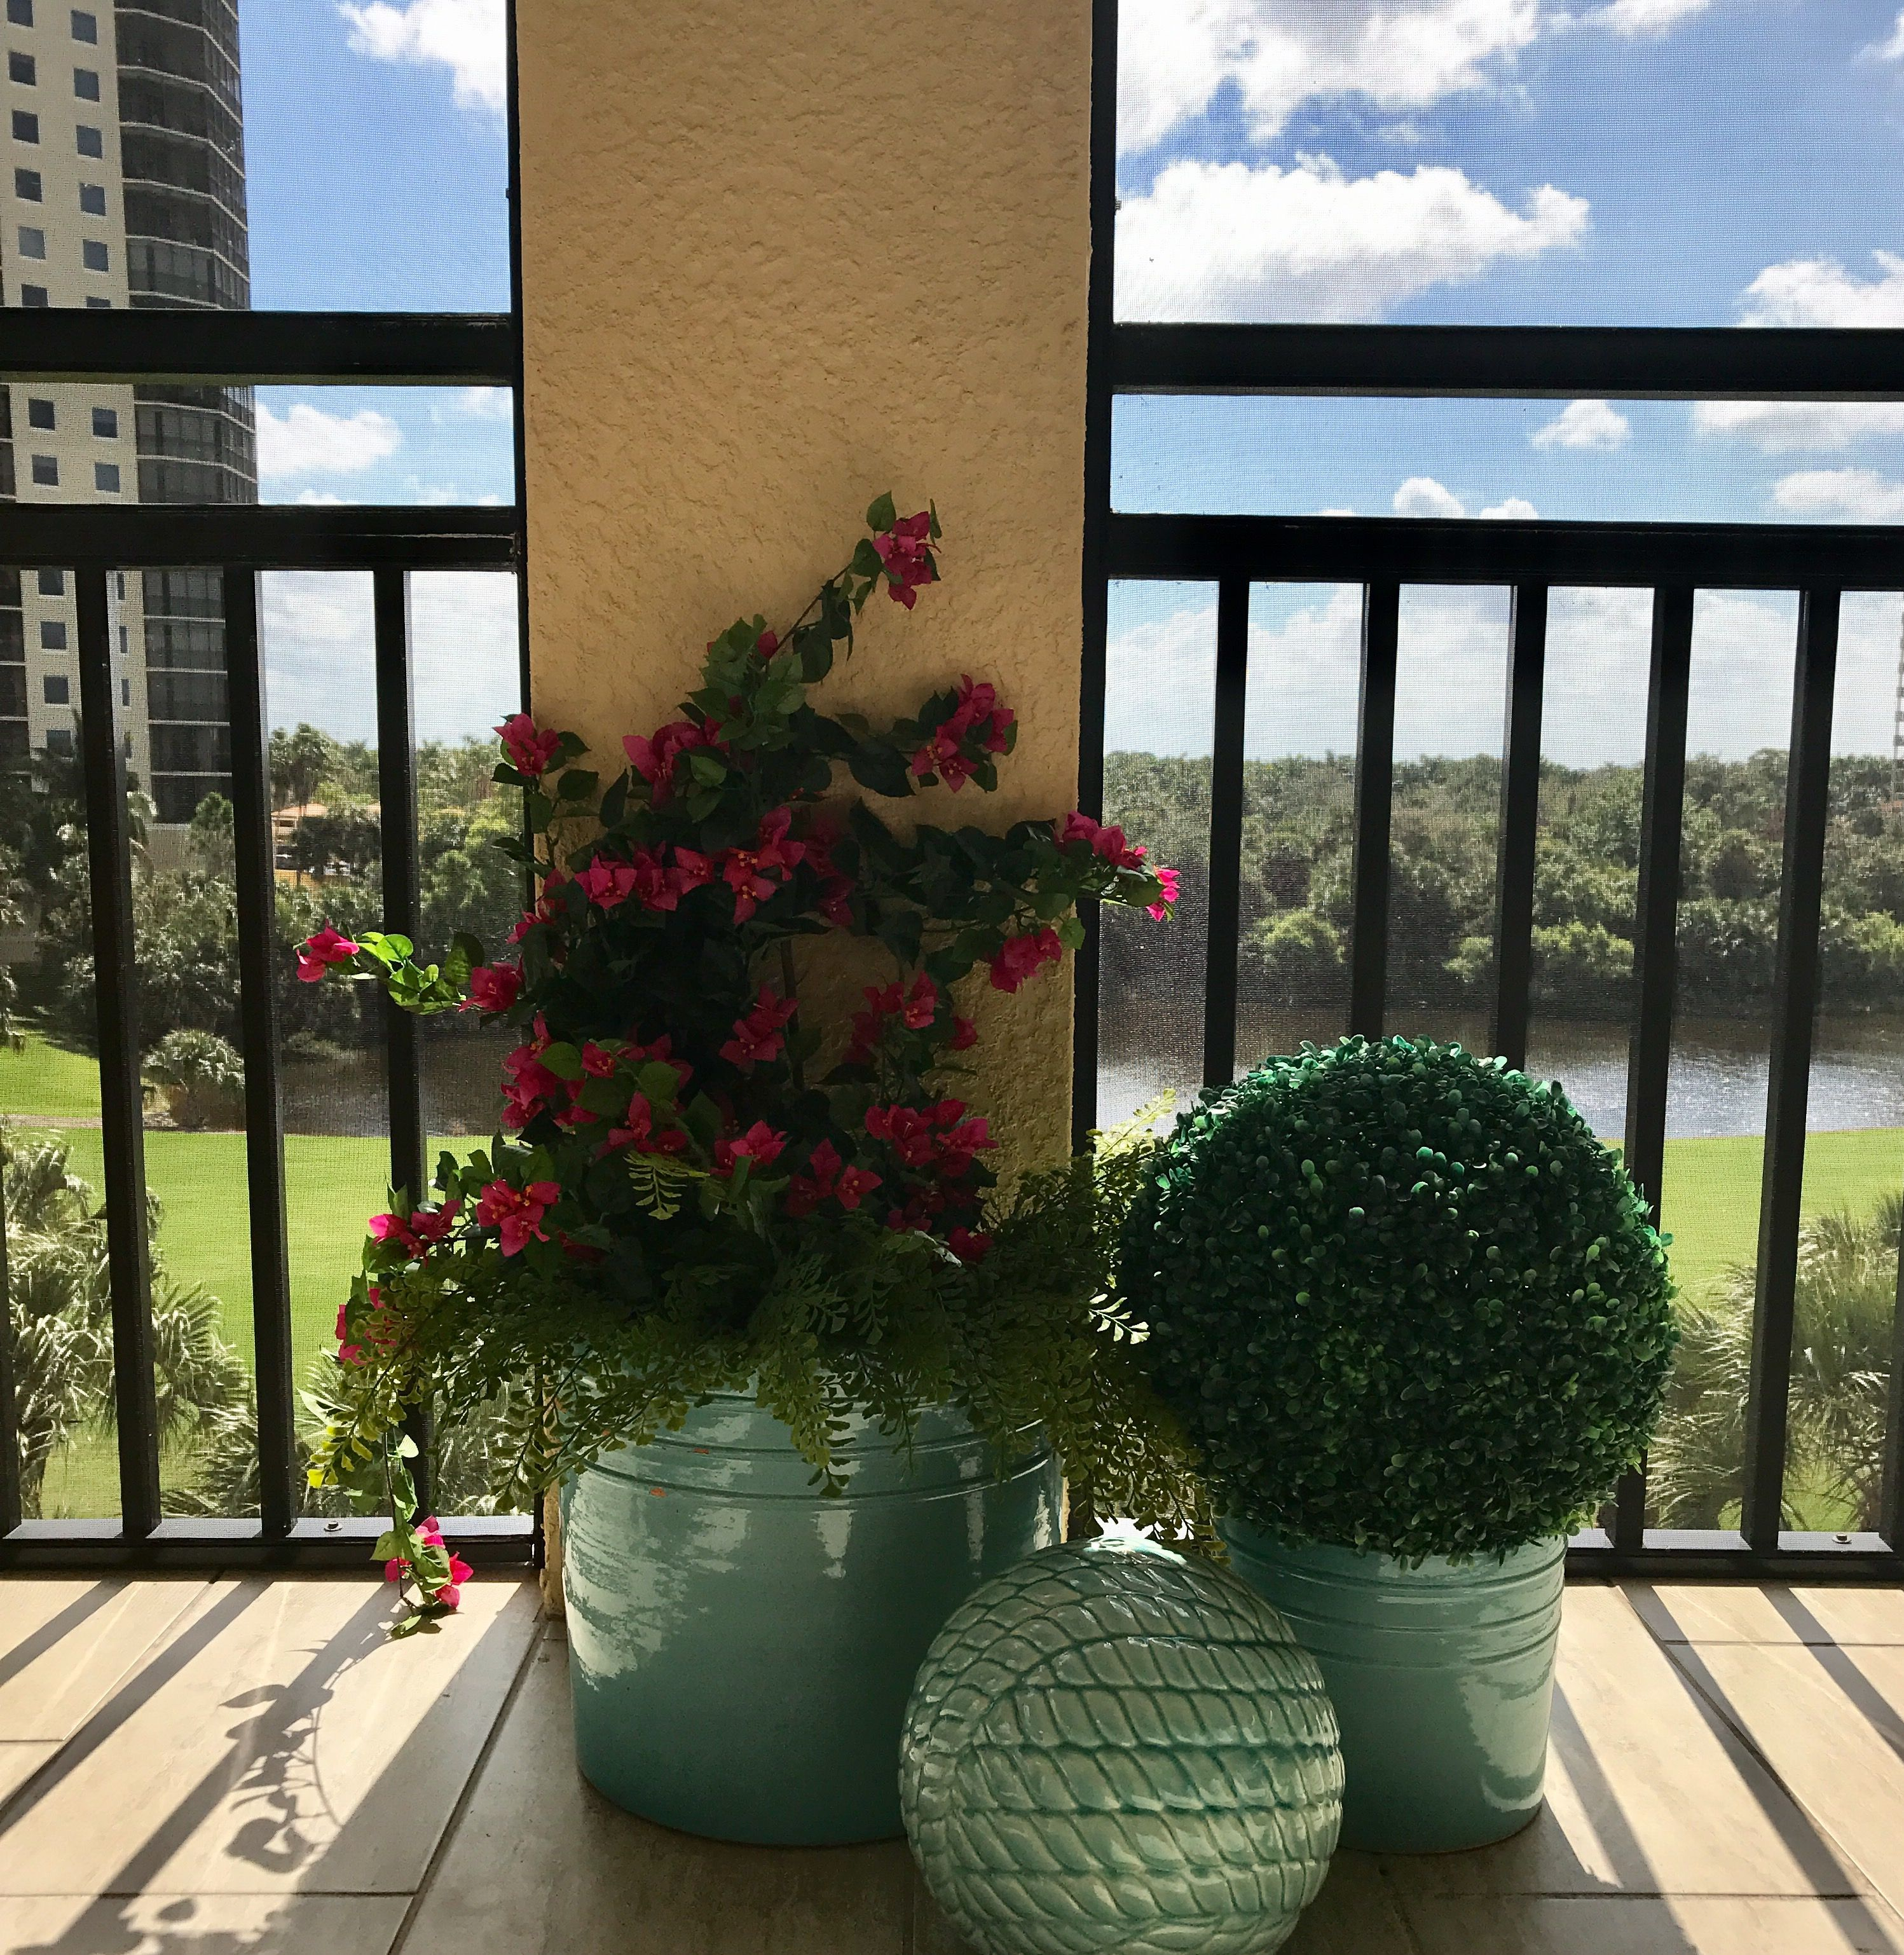 A key factor in using outdoor artificial plants is using them in a